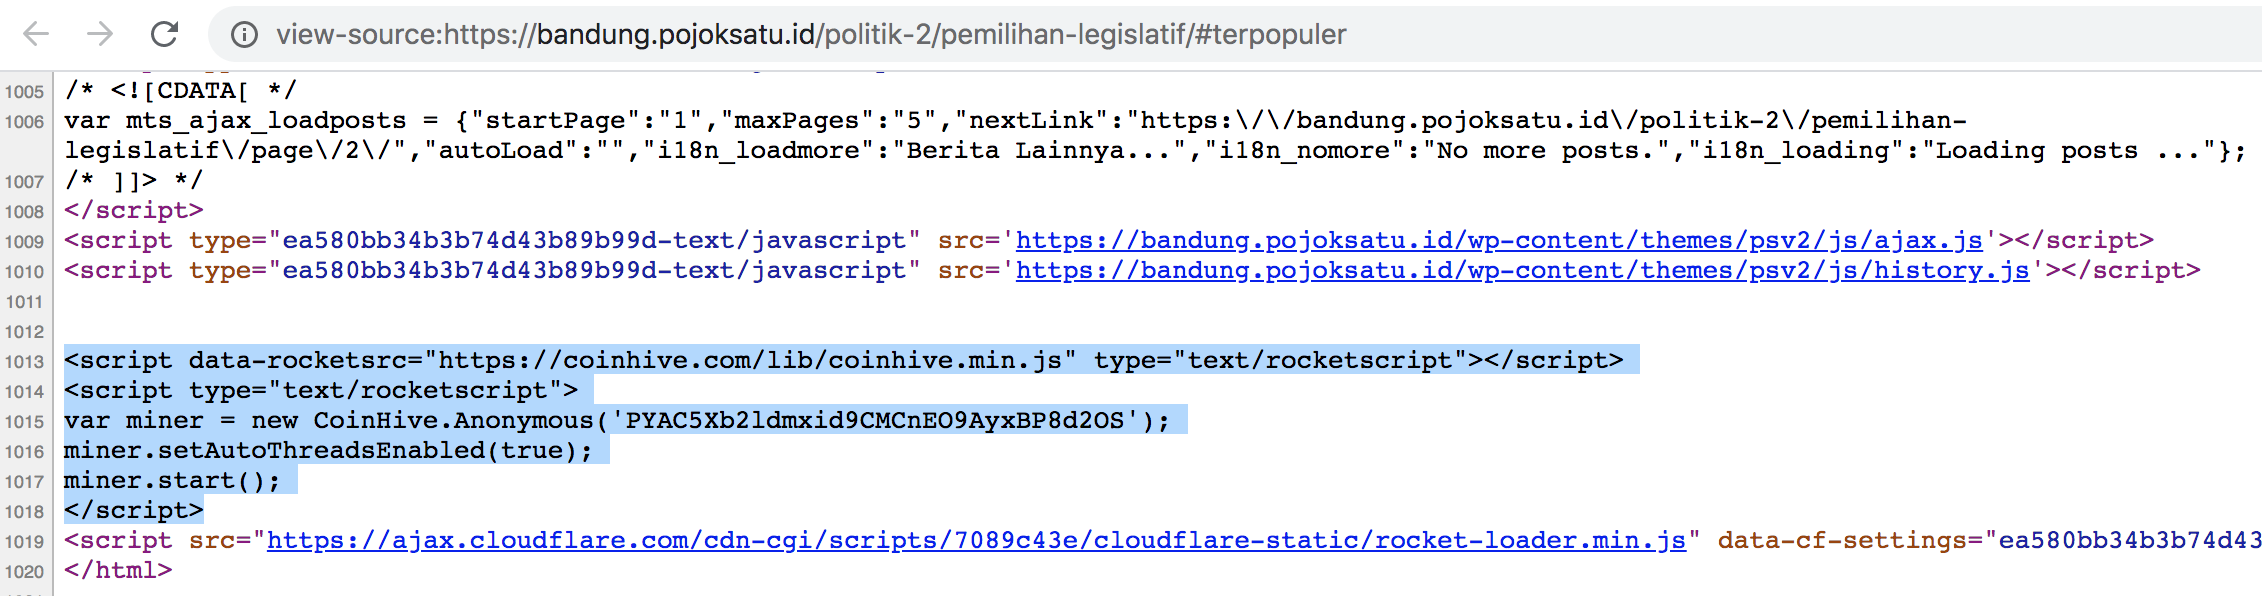 The source on a compromised website, pojoksatu[.]id, shows default commands used to start malicious coinminers.